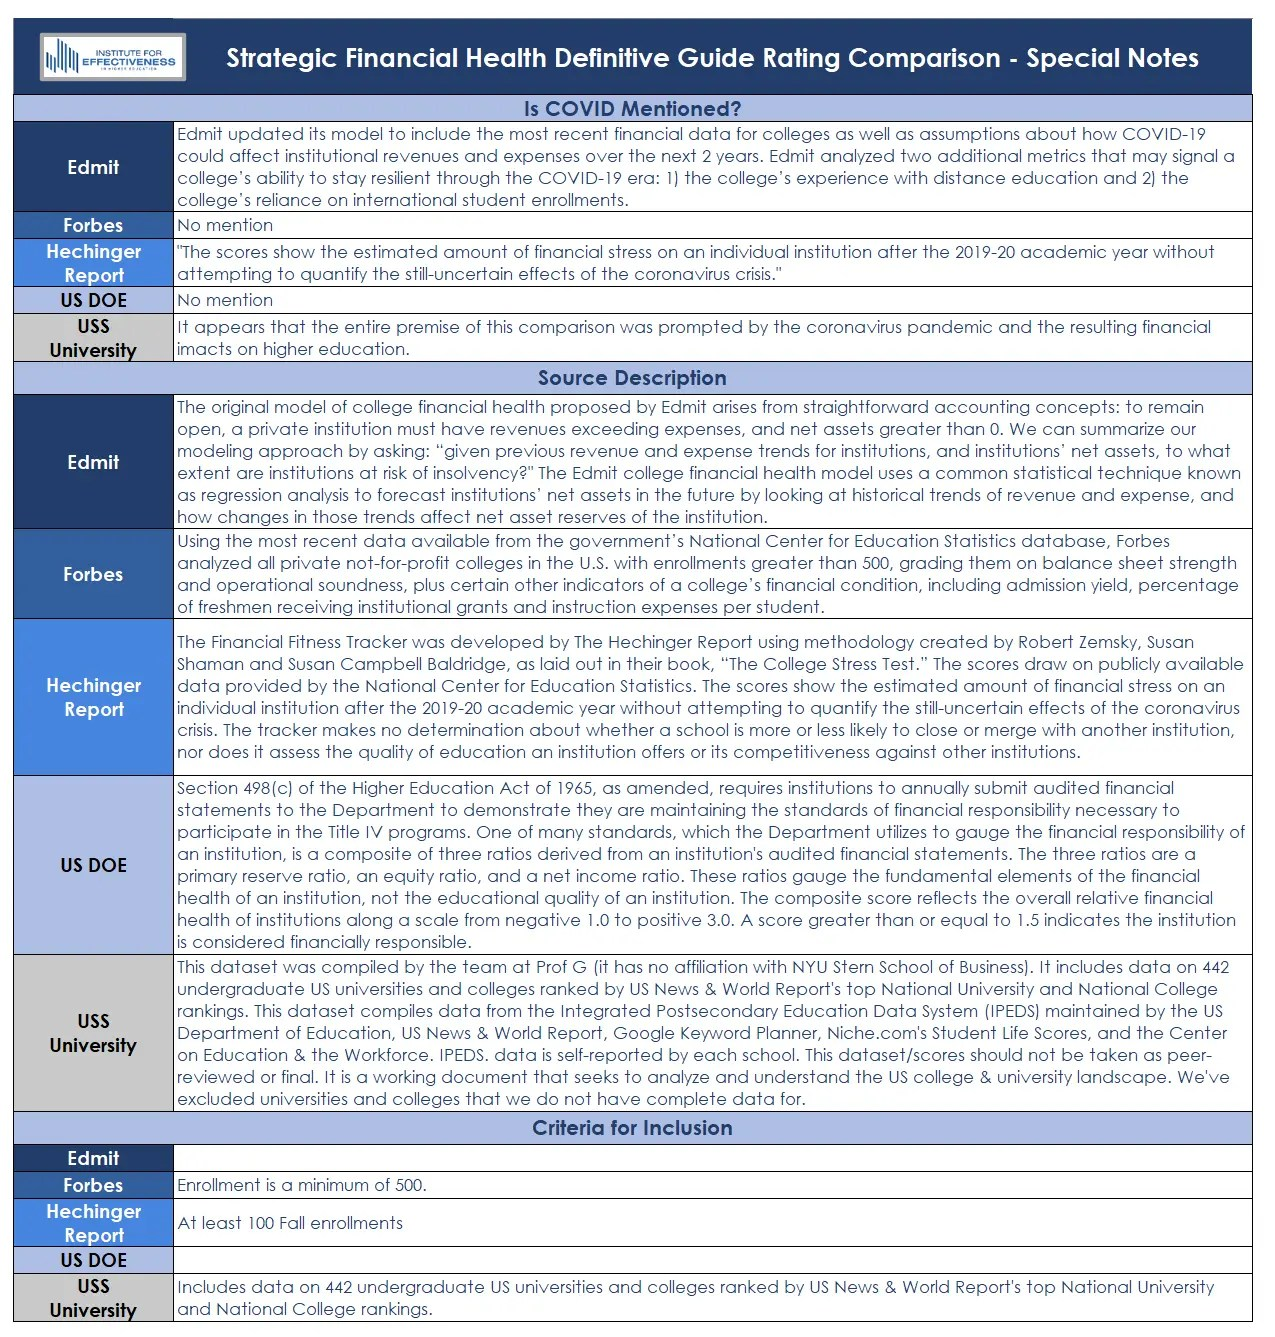 Strategic Financial Health Definitive Guide Rating Comparison - Special Notes List